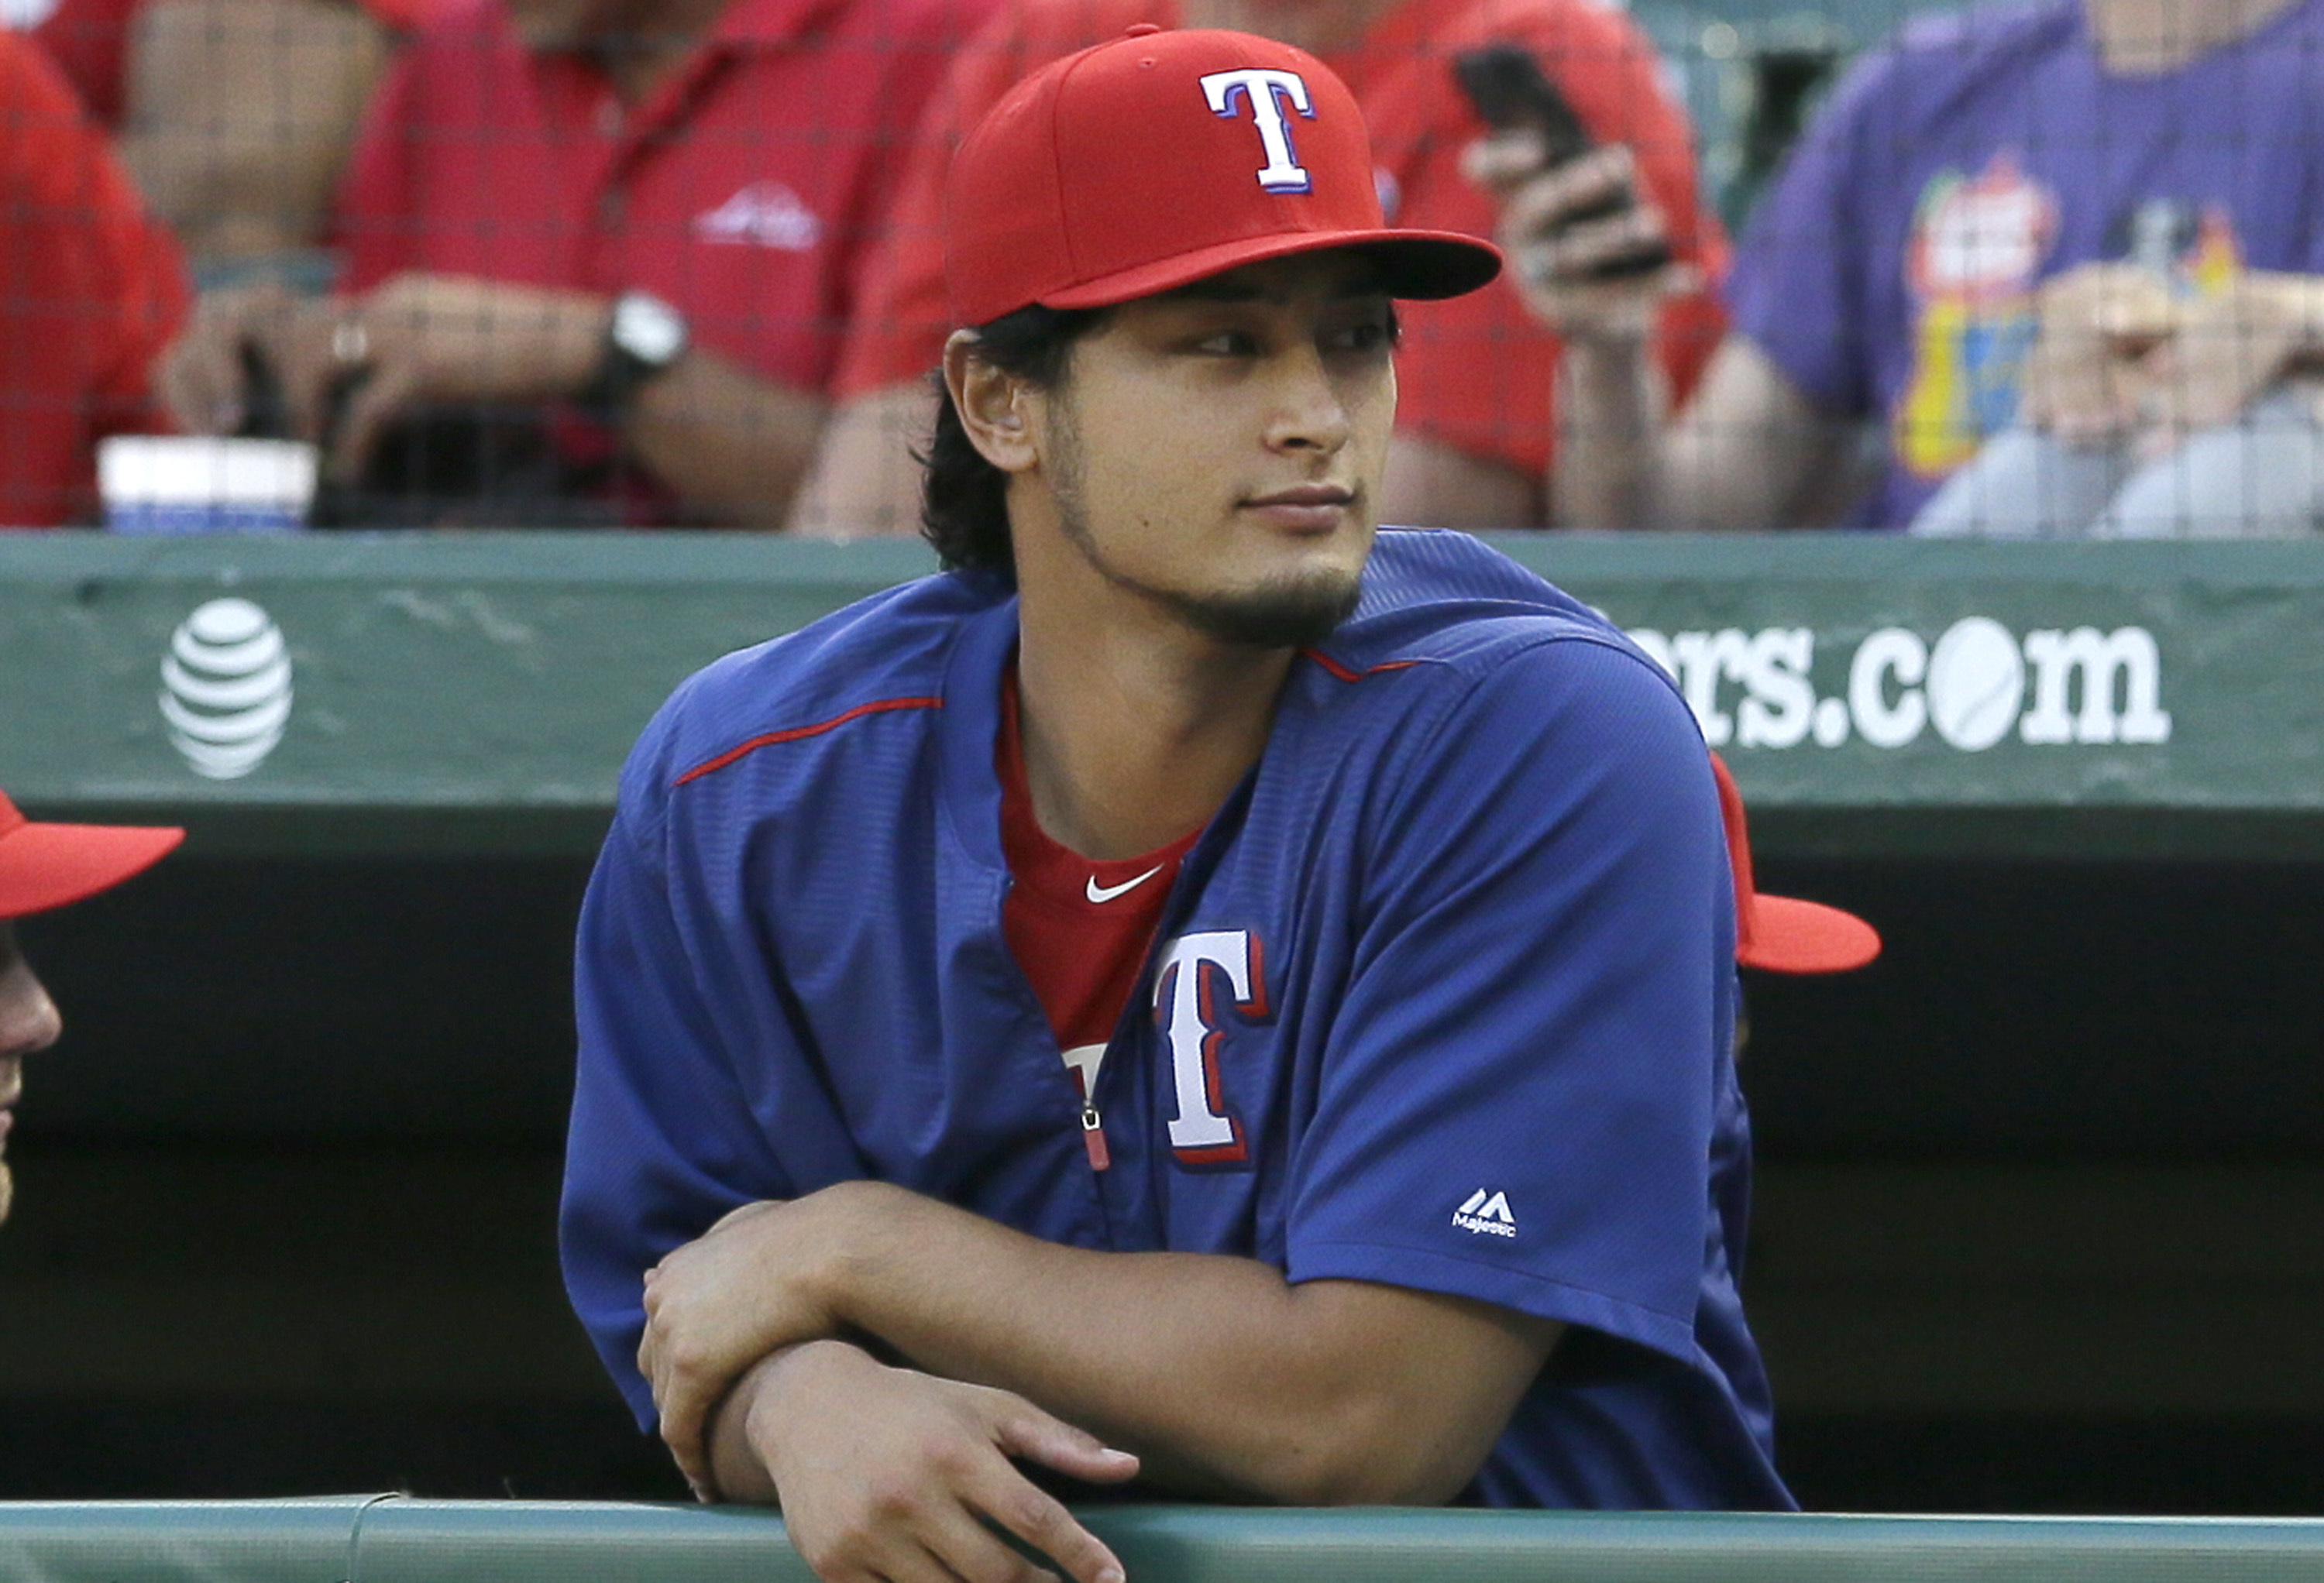 Texas Rangers pitcher Yu Darvish of Japan watches from the dugout during the first inning of a baseball game against the Los Angeles Angels in Arlington, Texas, Monday, May 23, 2016. (AP Photo/LM Otero)